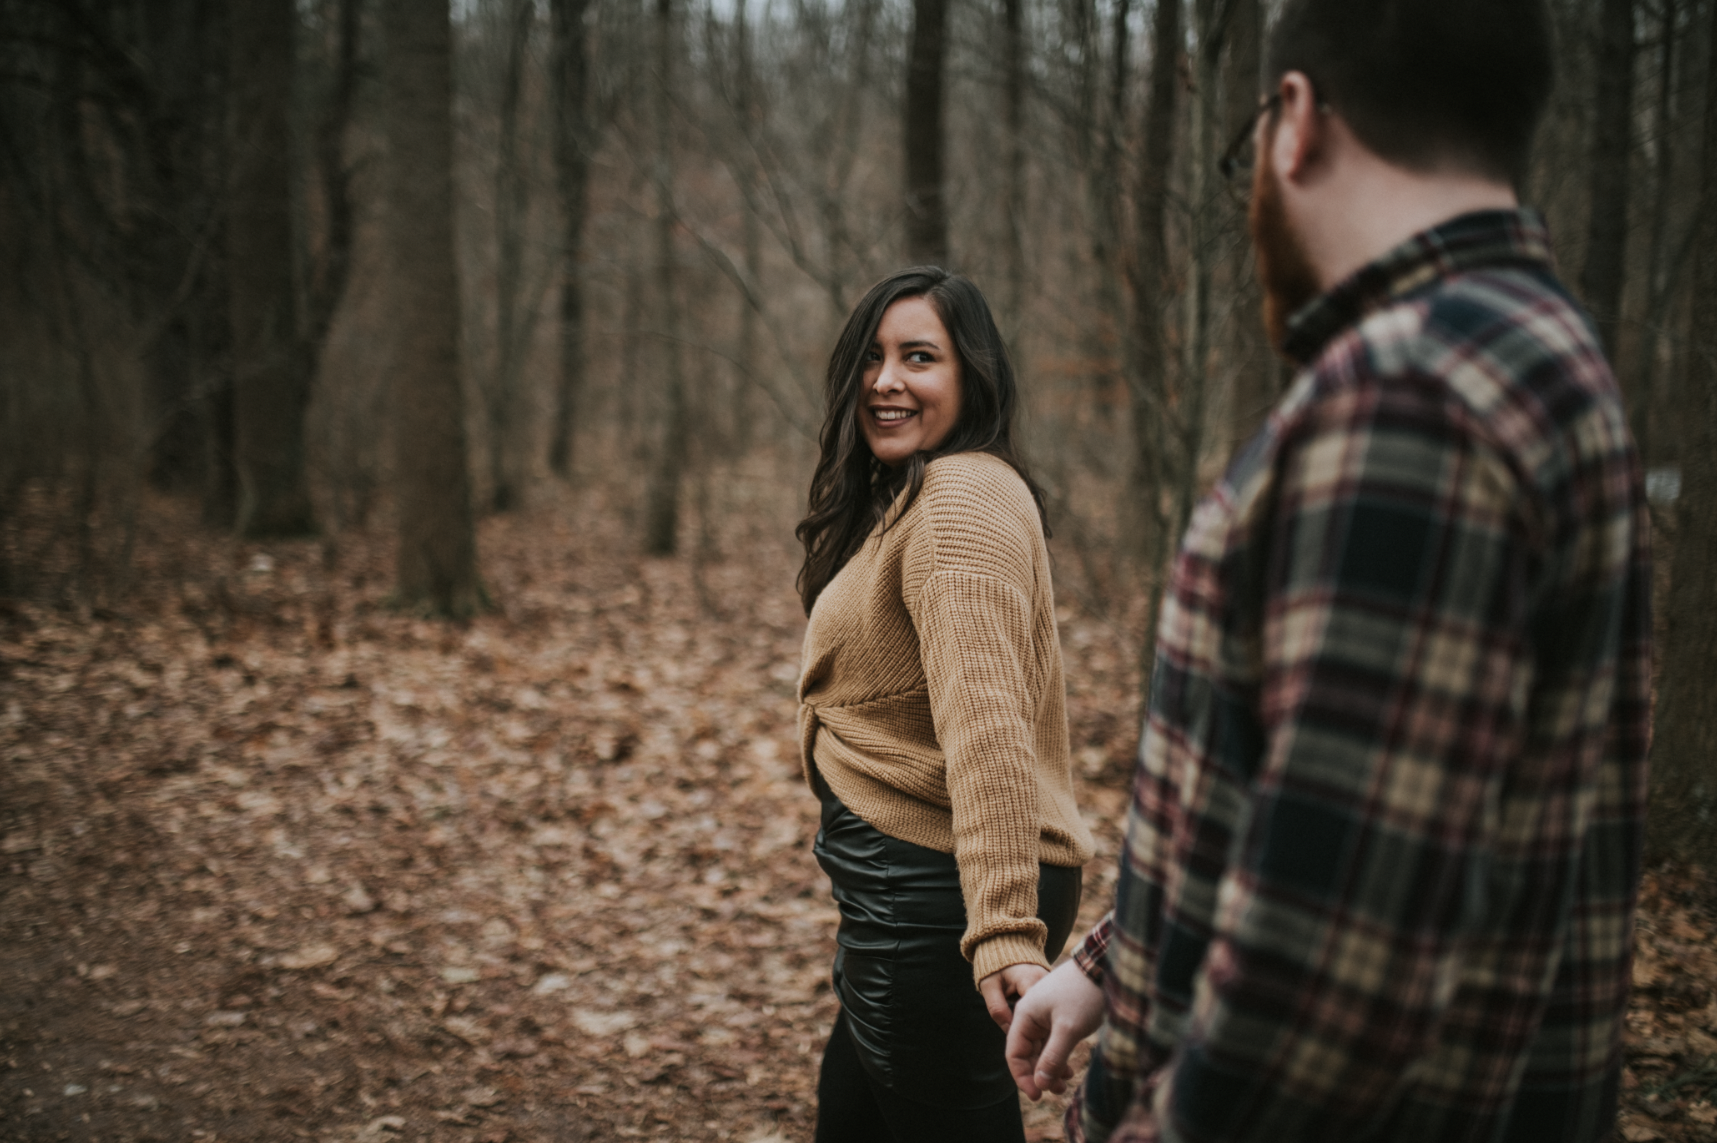 matt-natalia-winter-woods-engagement-session-pennsylvania-wedding-photographer-3